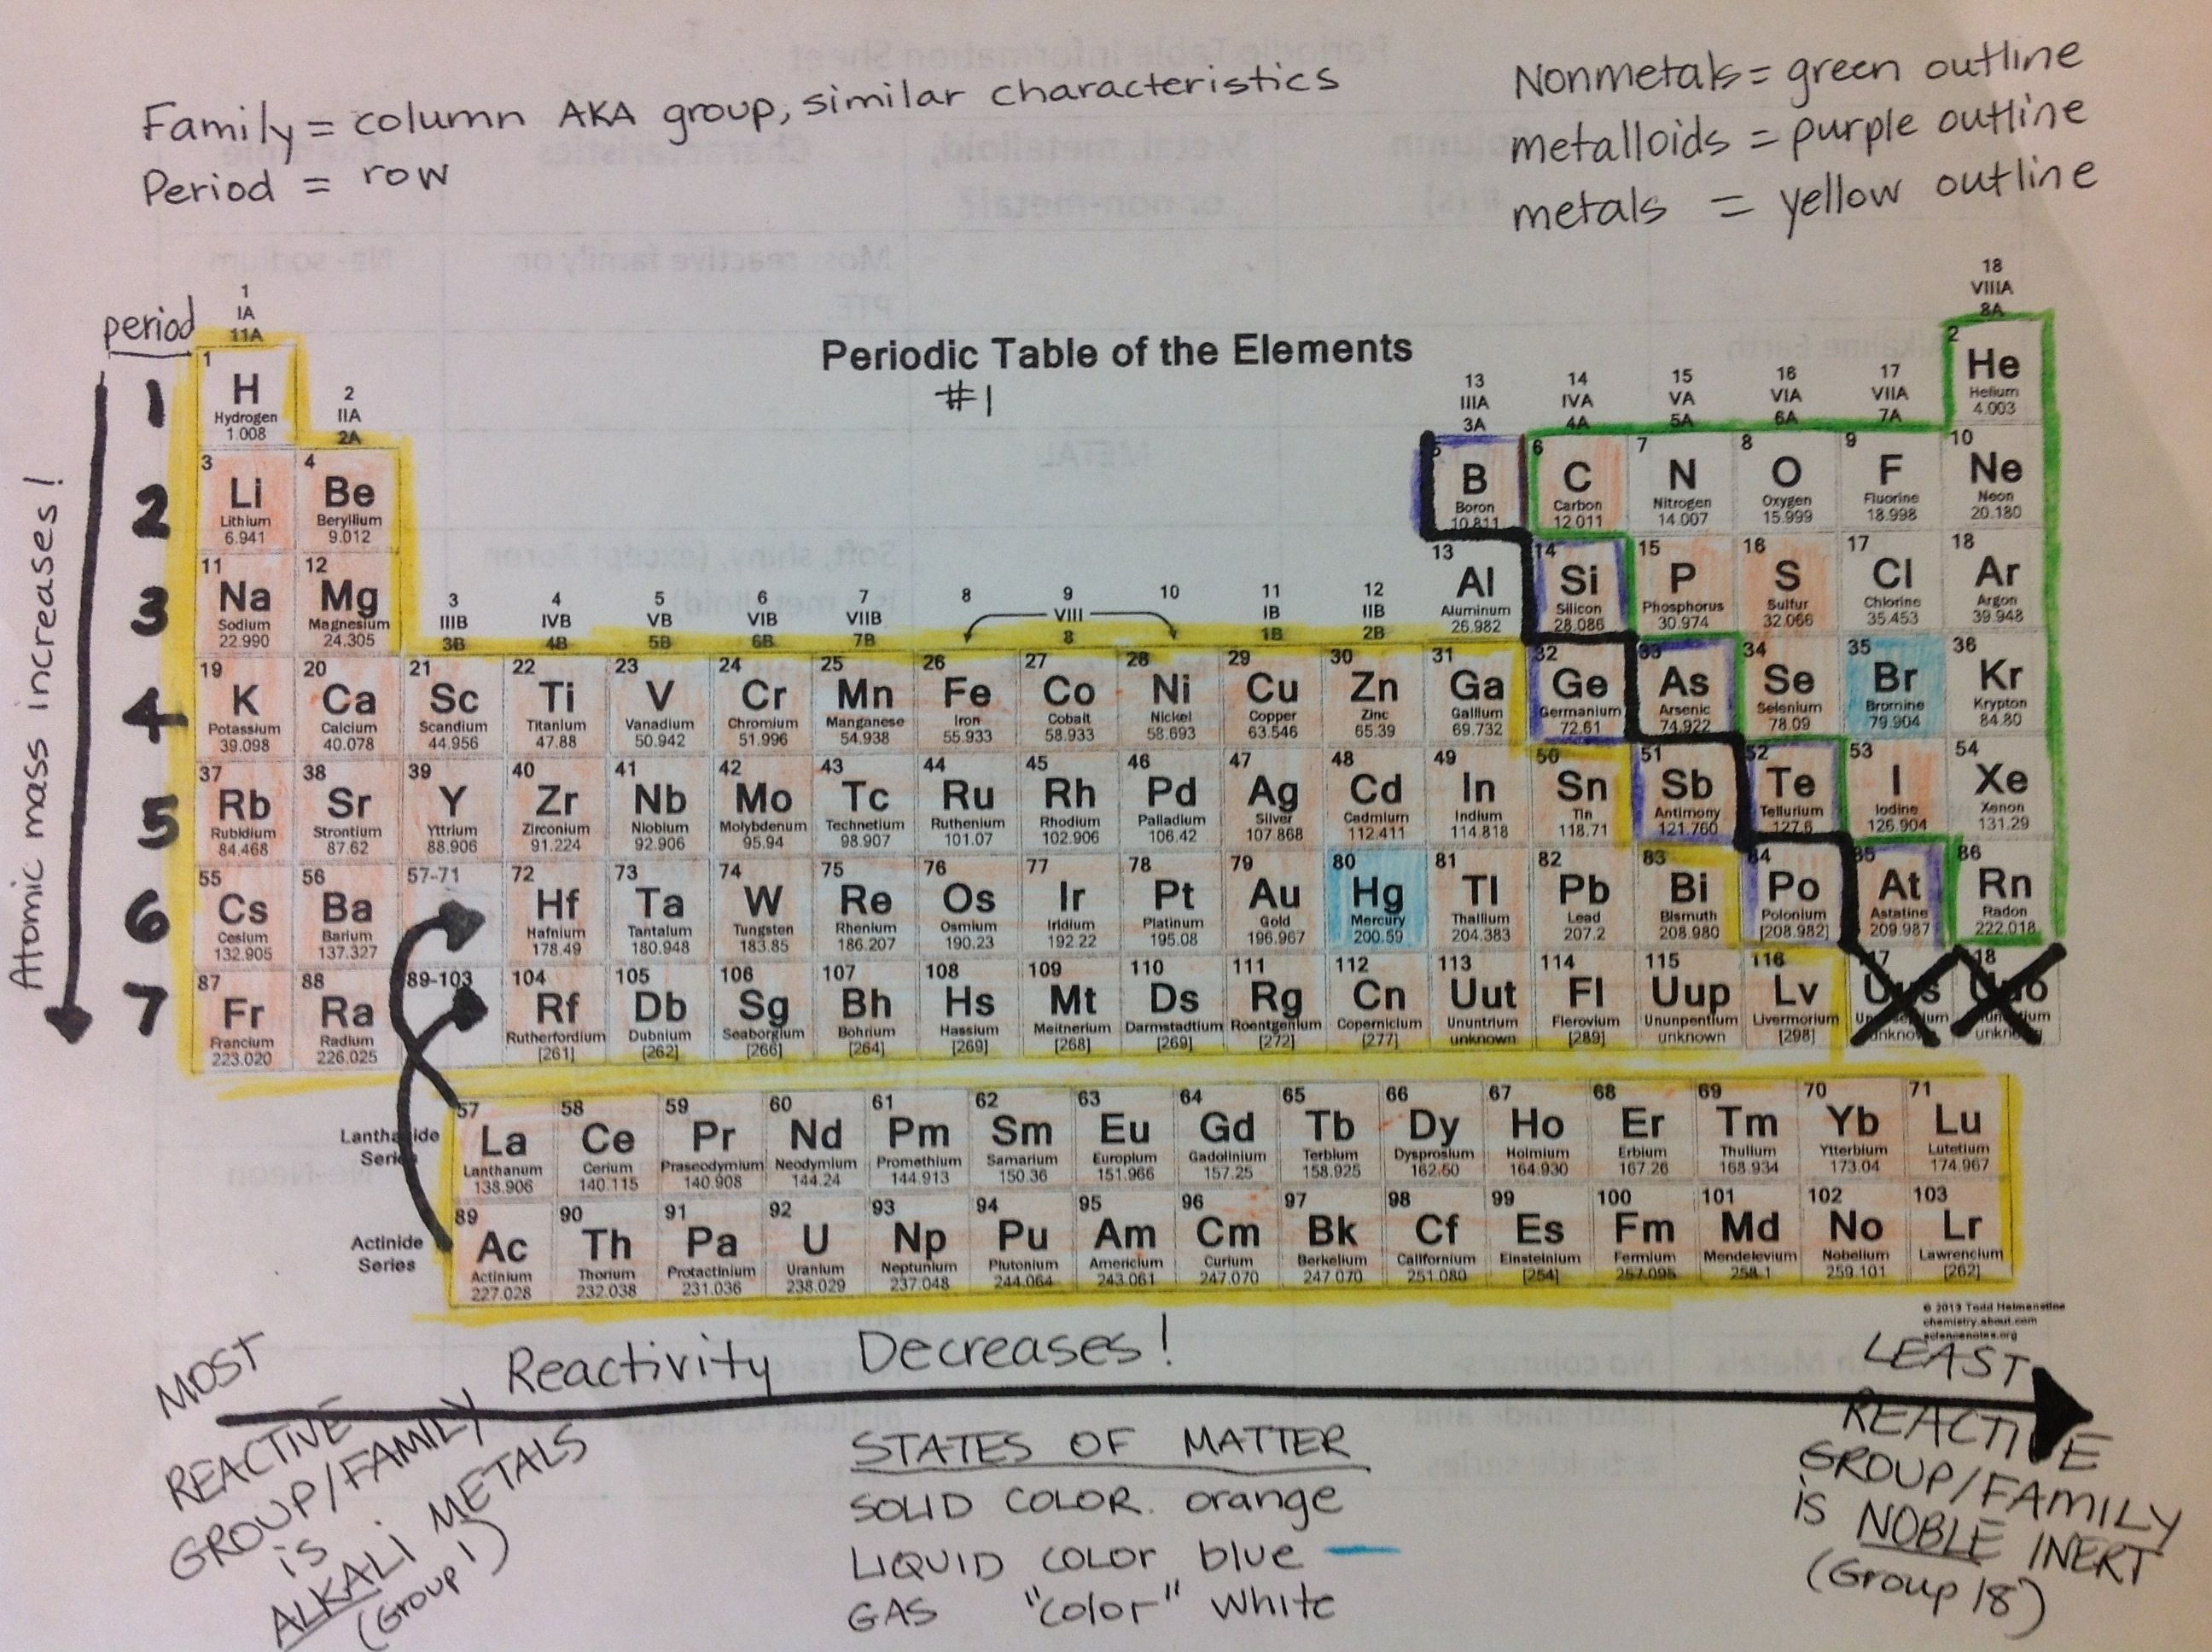 Periodic table of elements information classroom pinterest periodic table of elements information urtaz Choice Image